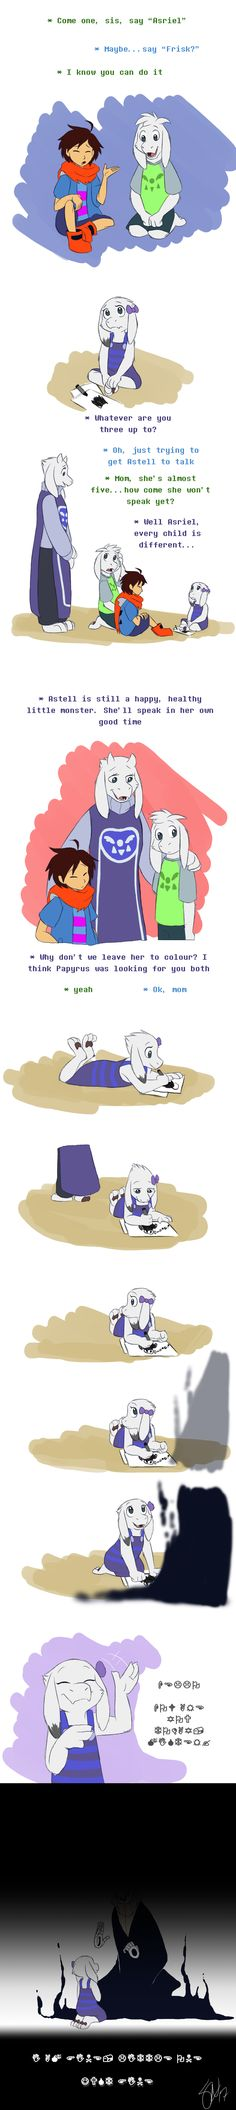 Siblingtale - Astell's new friend by TC-96<< ok I usually don't like these comics but whoa